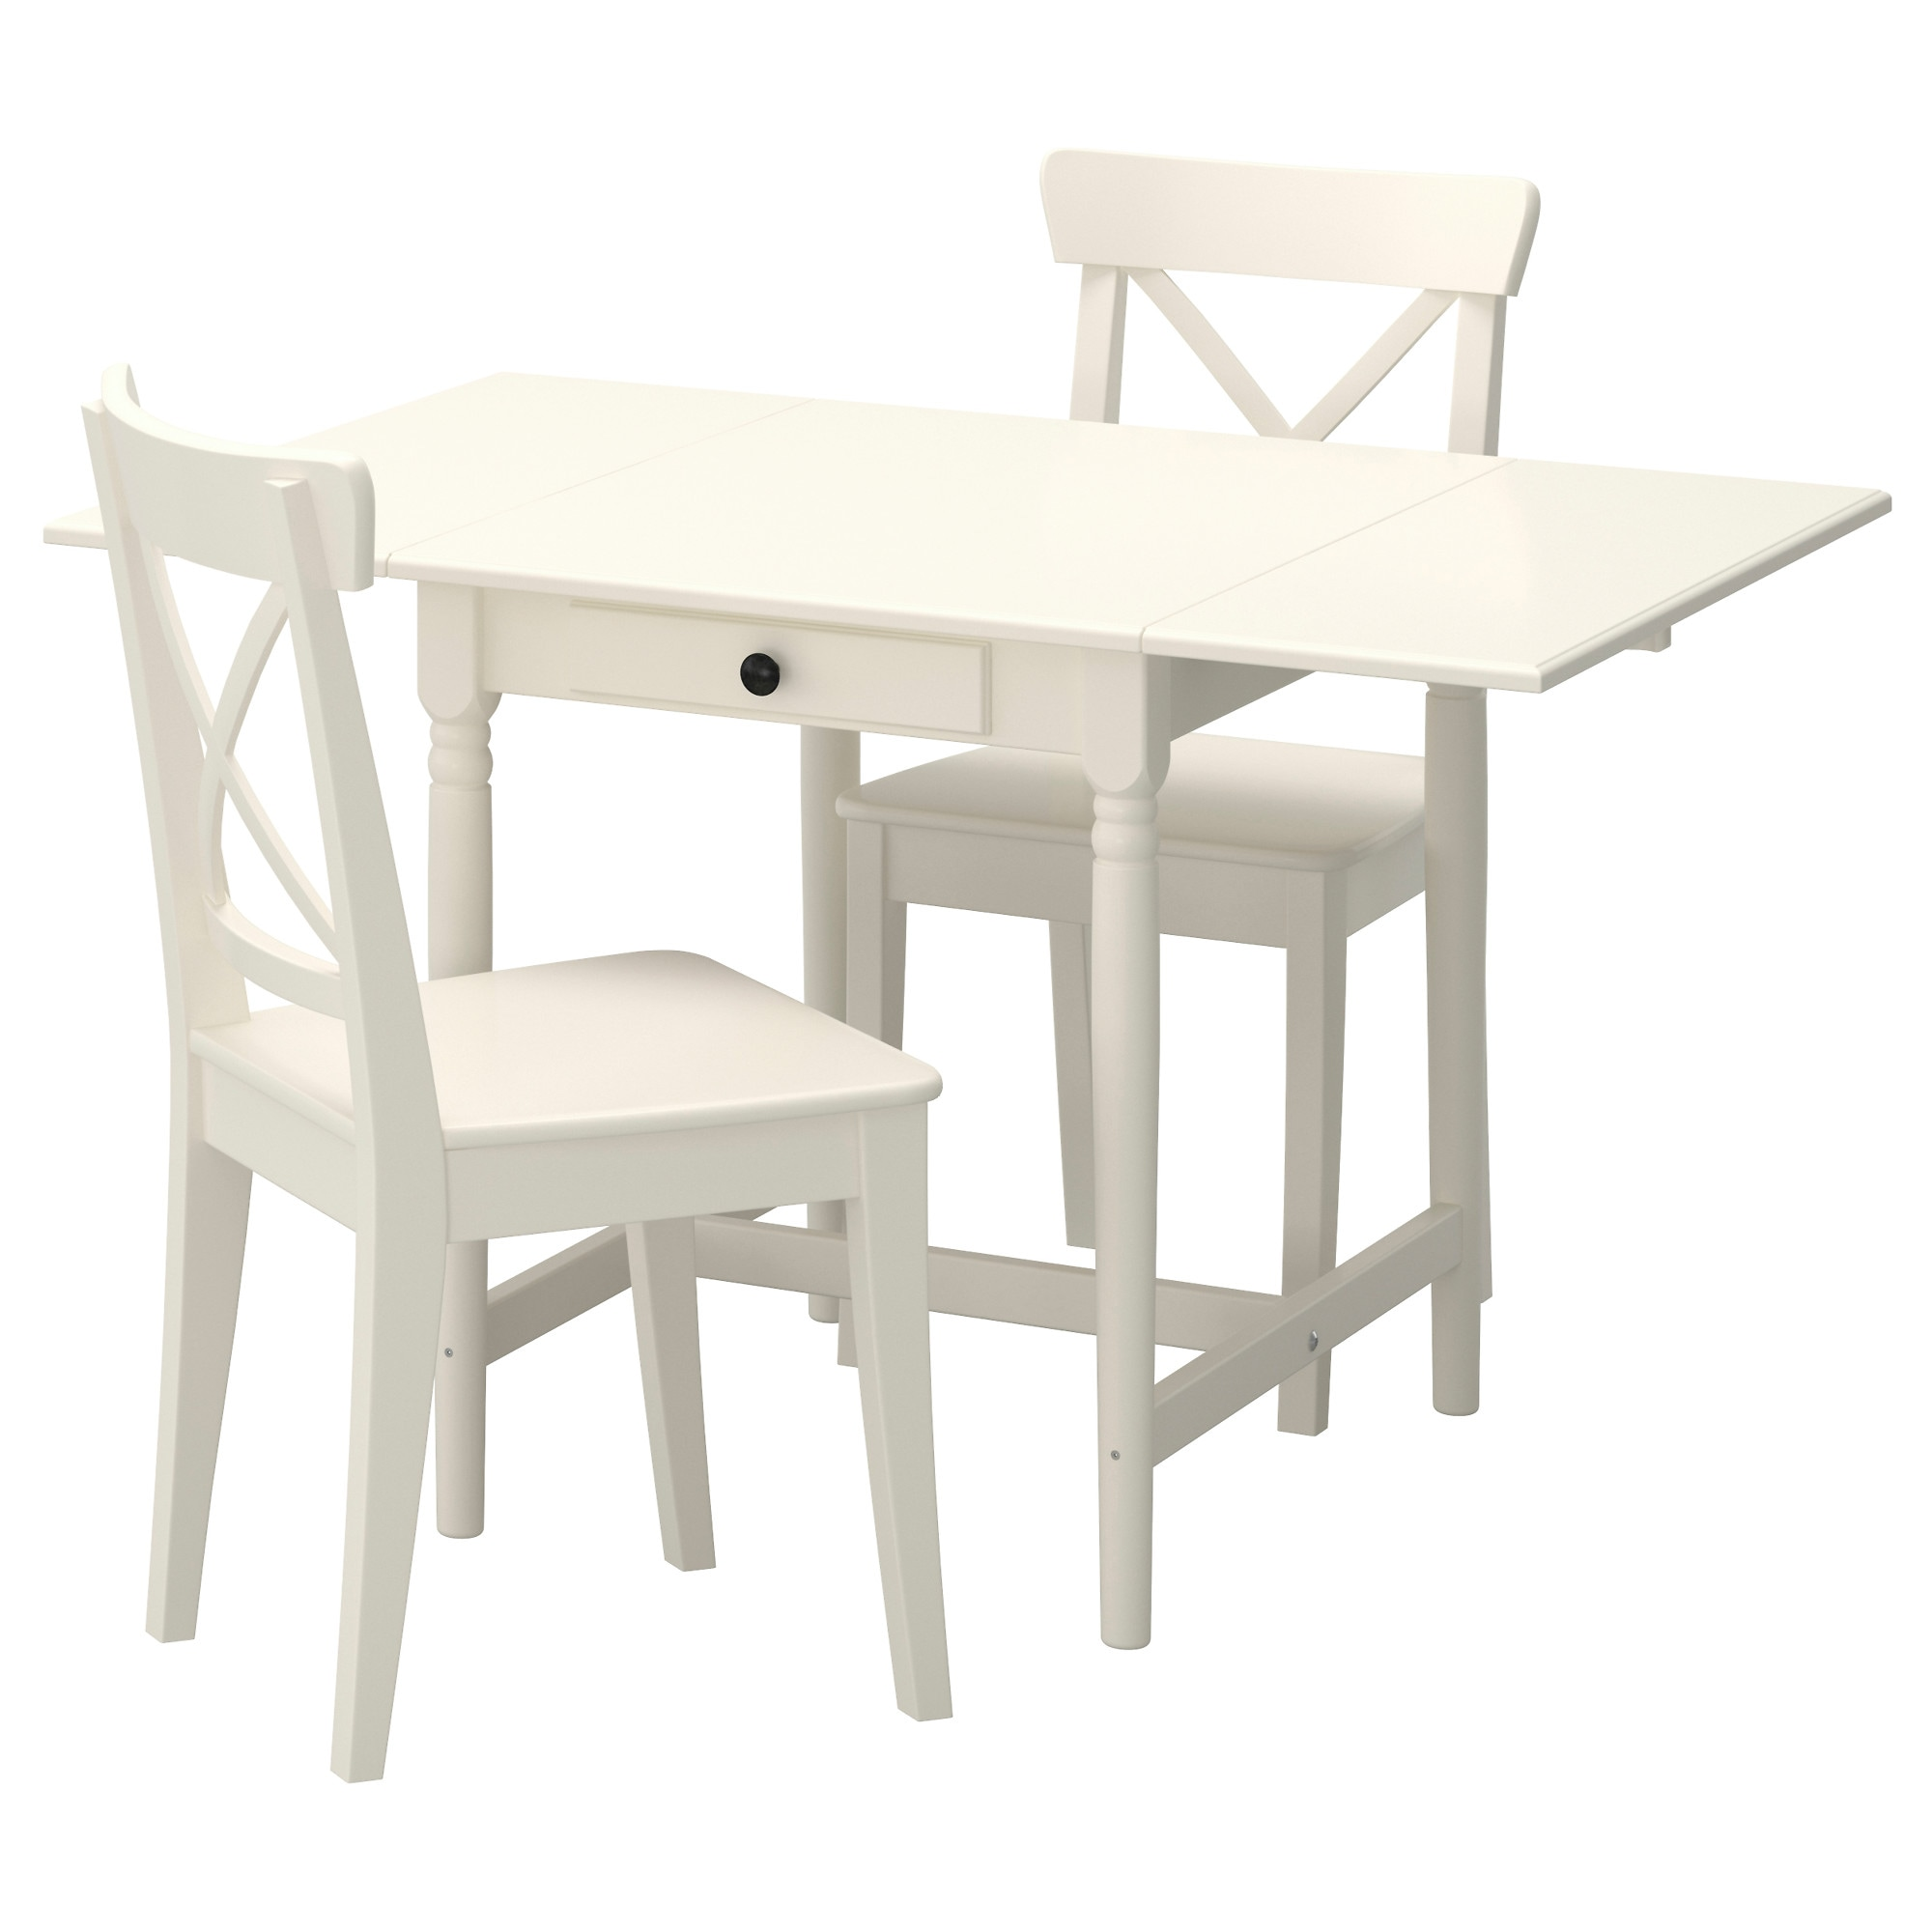 ingatorp   ingolf table and 2 chairs dining sets up to 2 seats   dining sets   ikea  rh   ikea com